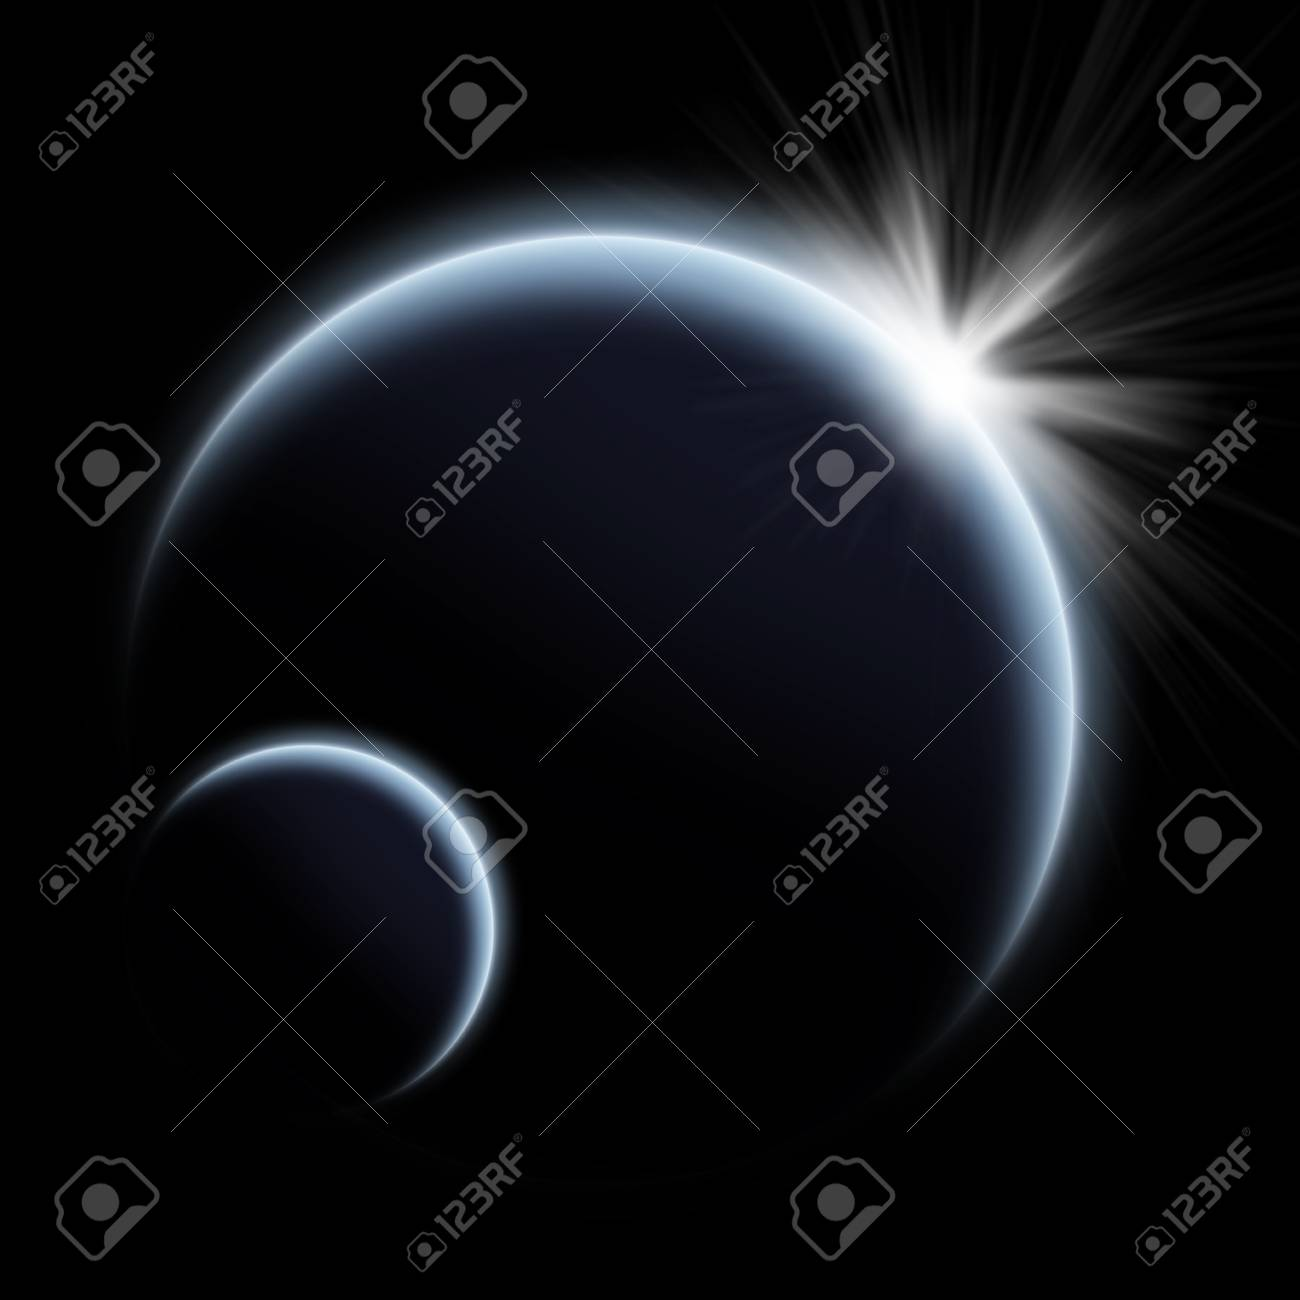 Planet earth lanscape in space Stock Photo - 13895680